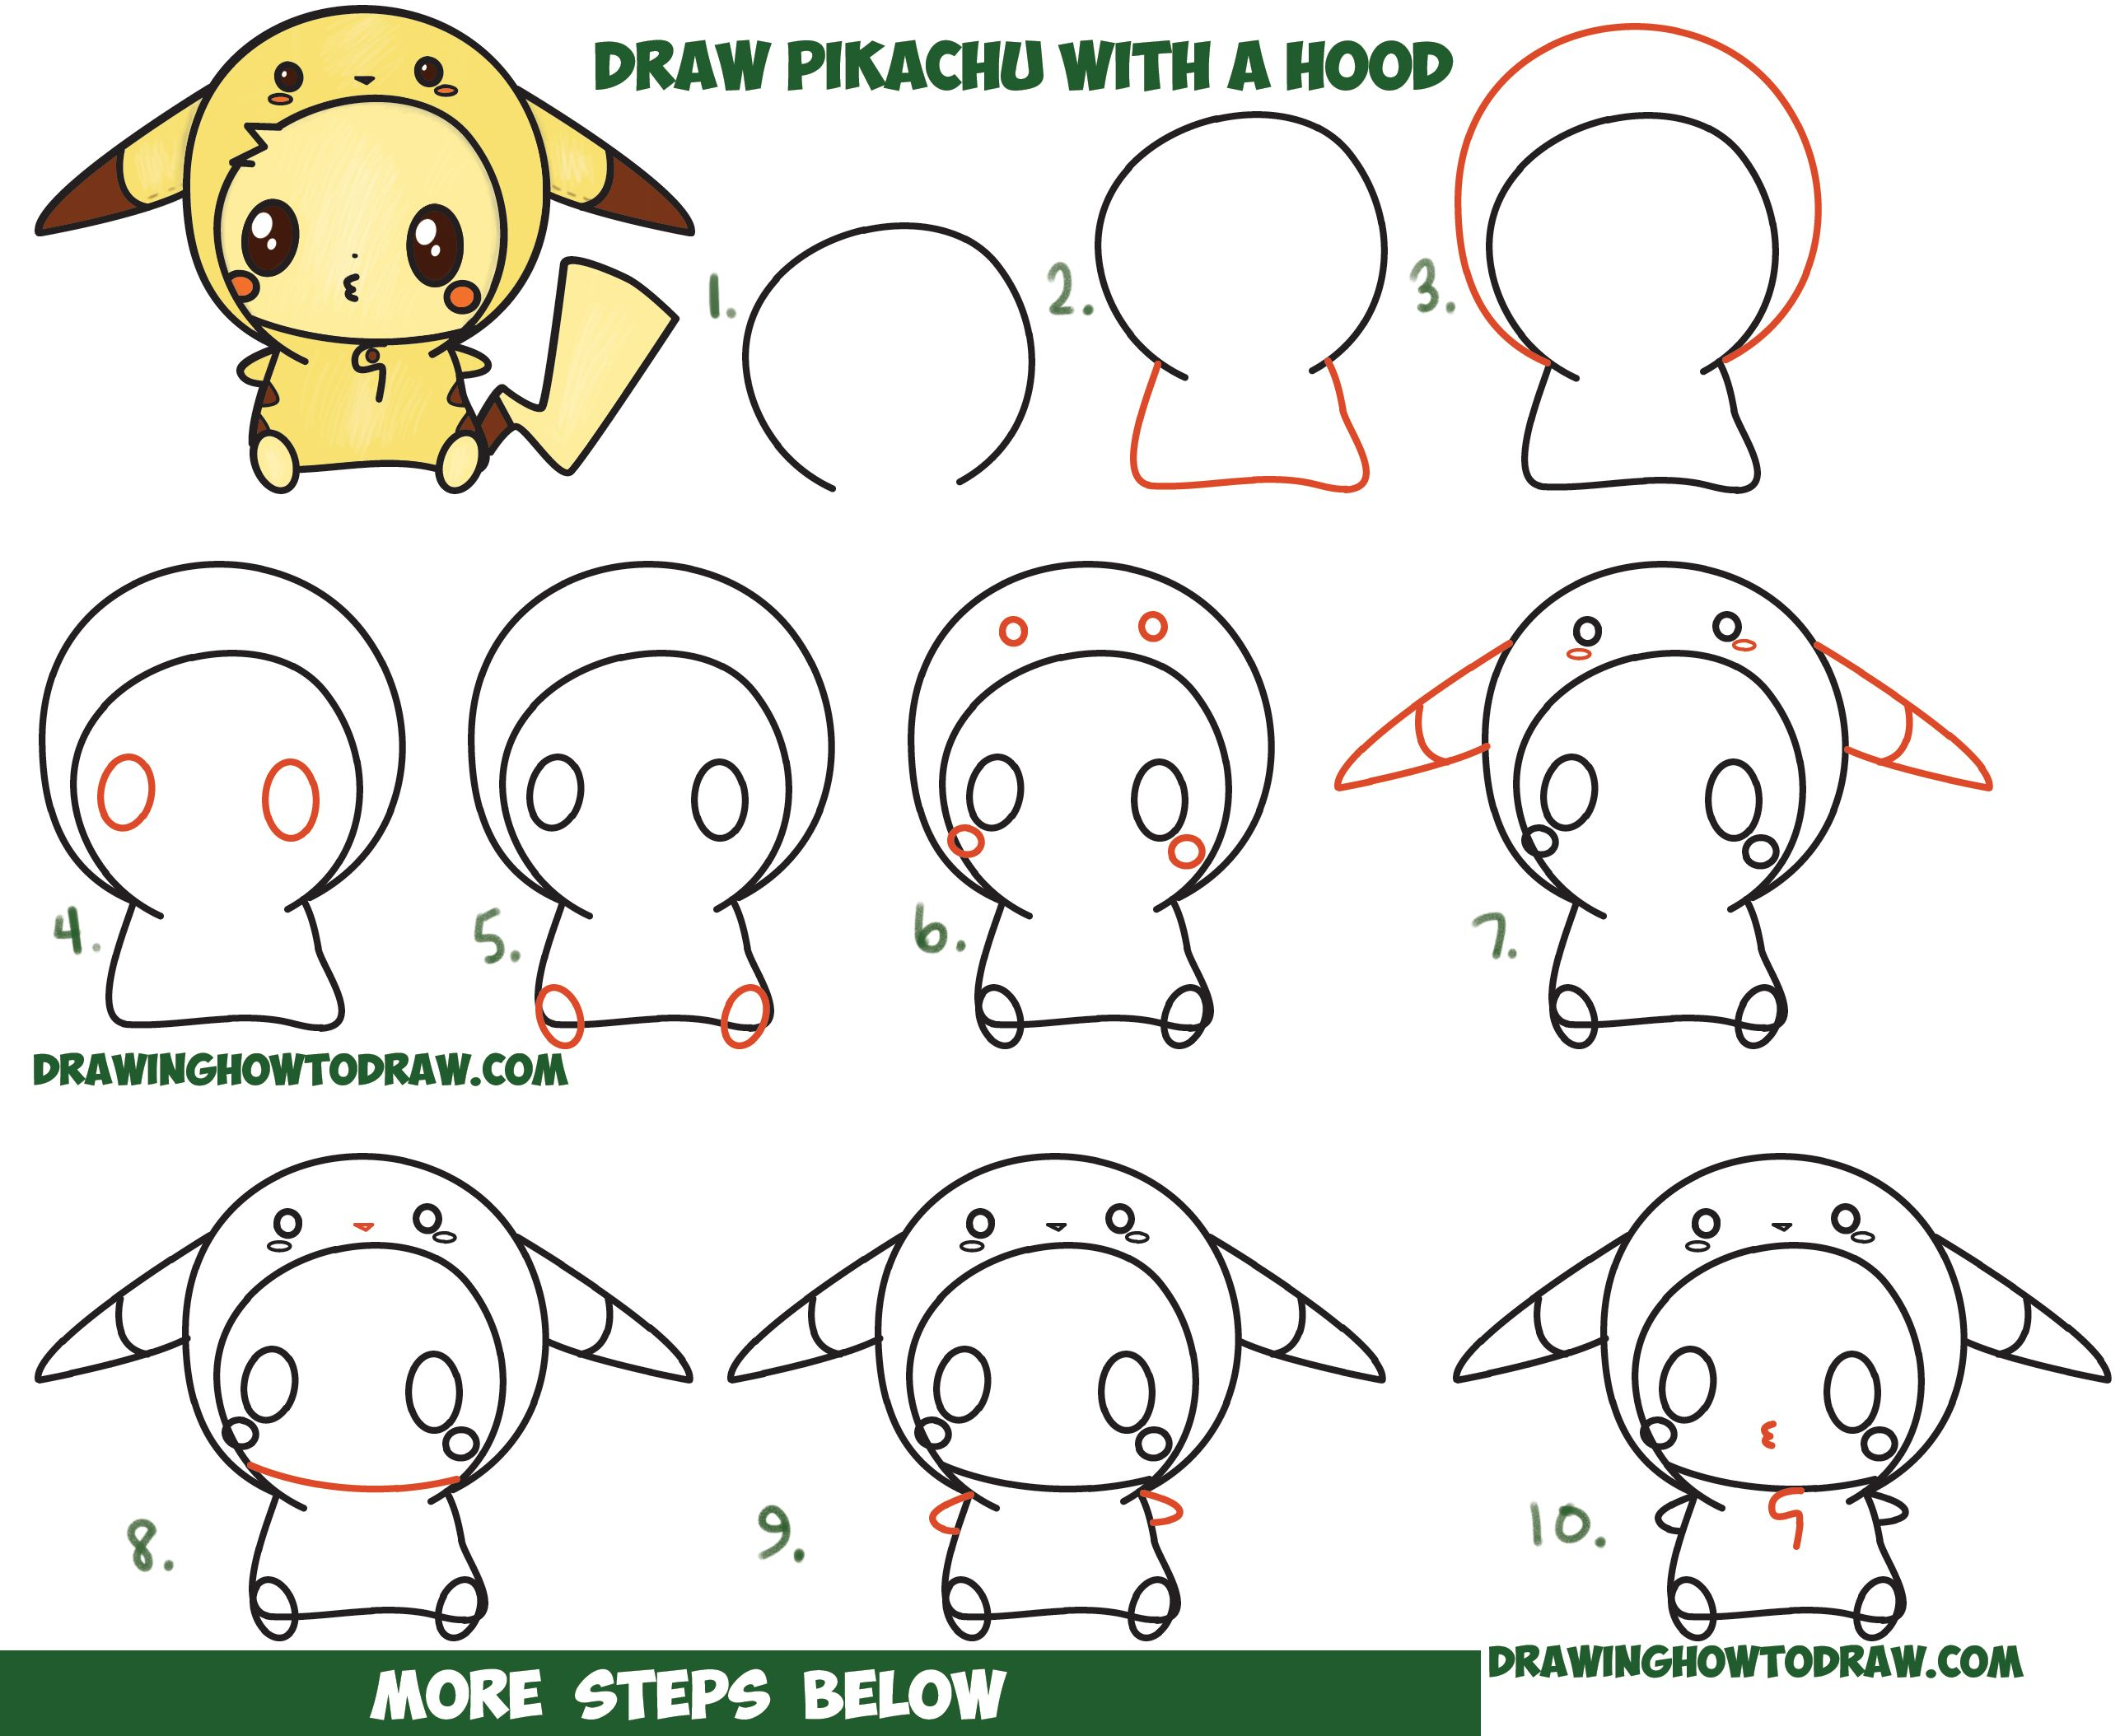 How to draw cute pikachu with costume hood from pokemon kawaii chibi style easy step by step drawing tutorial for kids and beginners